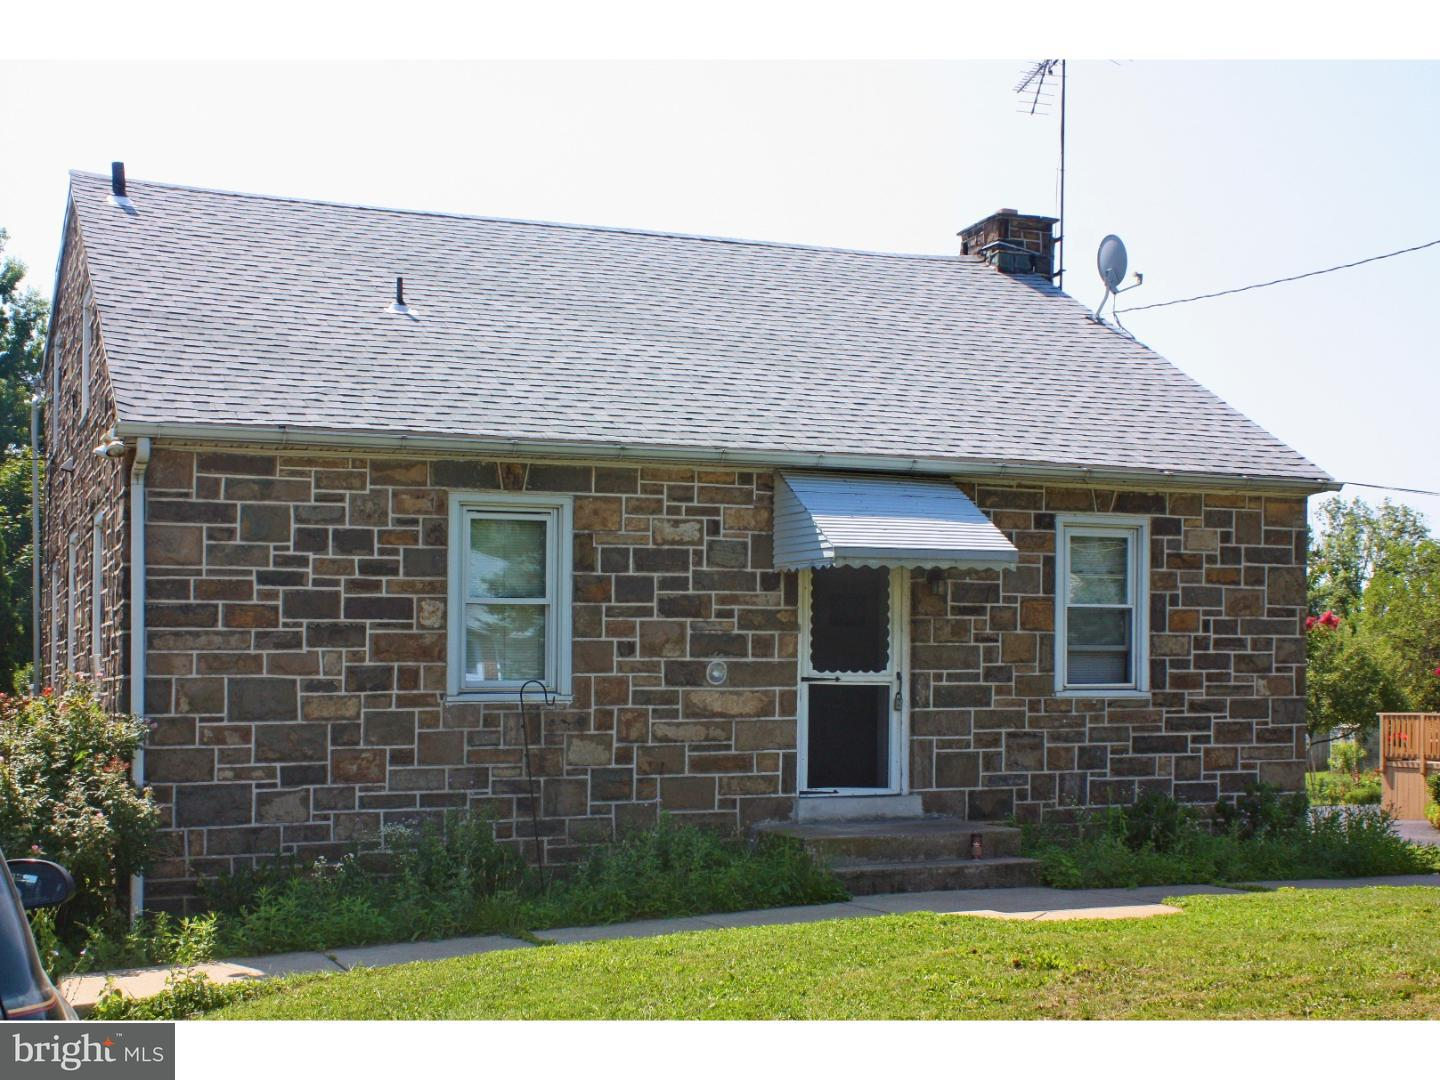 Single Family Home for Rent at 36 N TROOPER Road Norristown, Pennsylvania 19403 United States